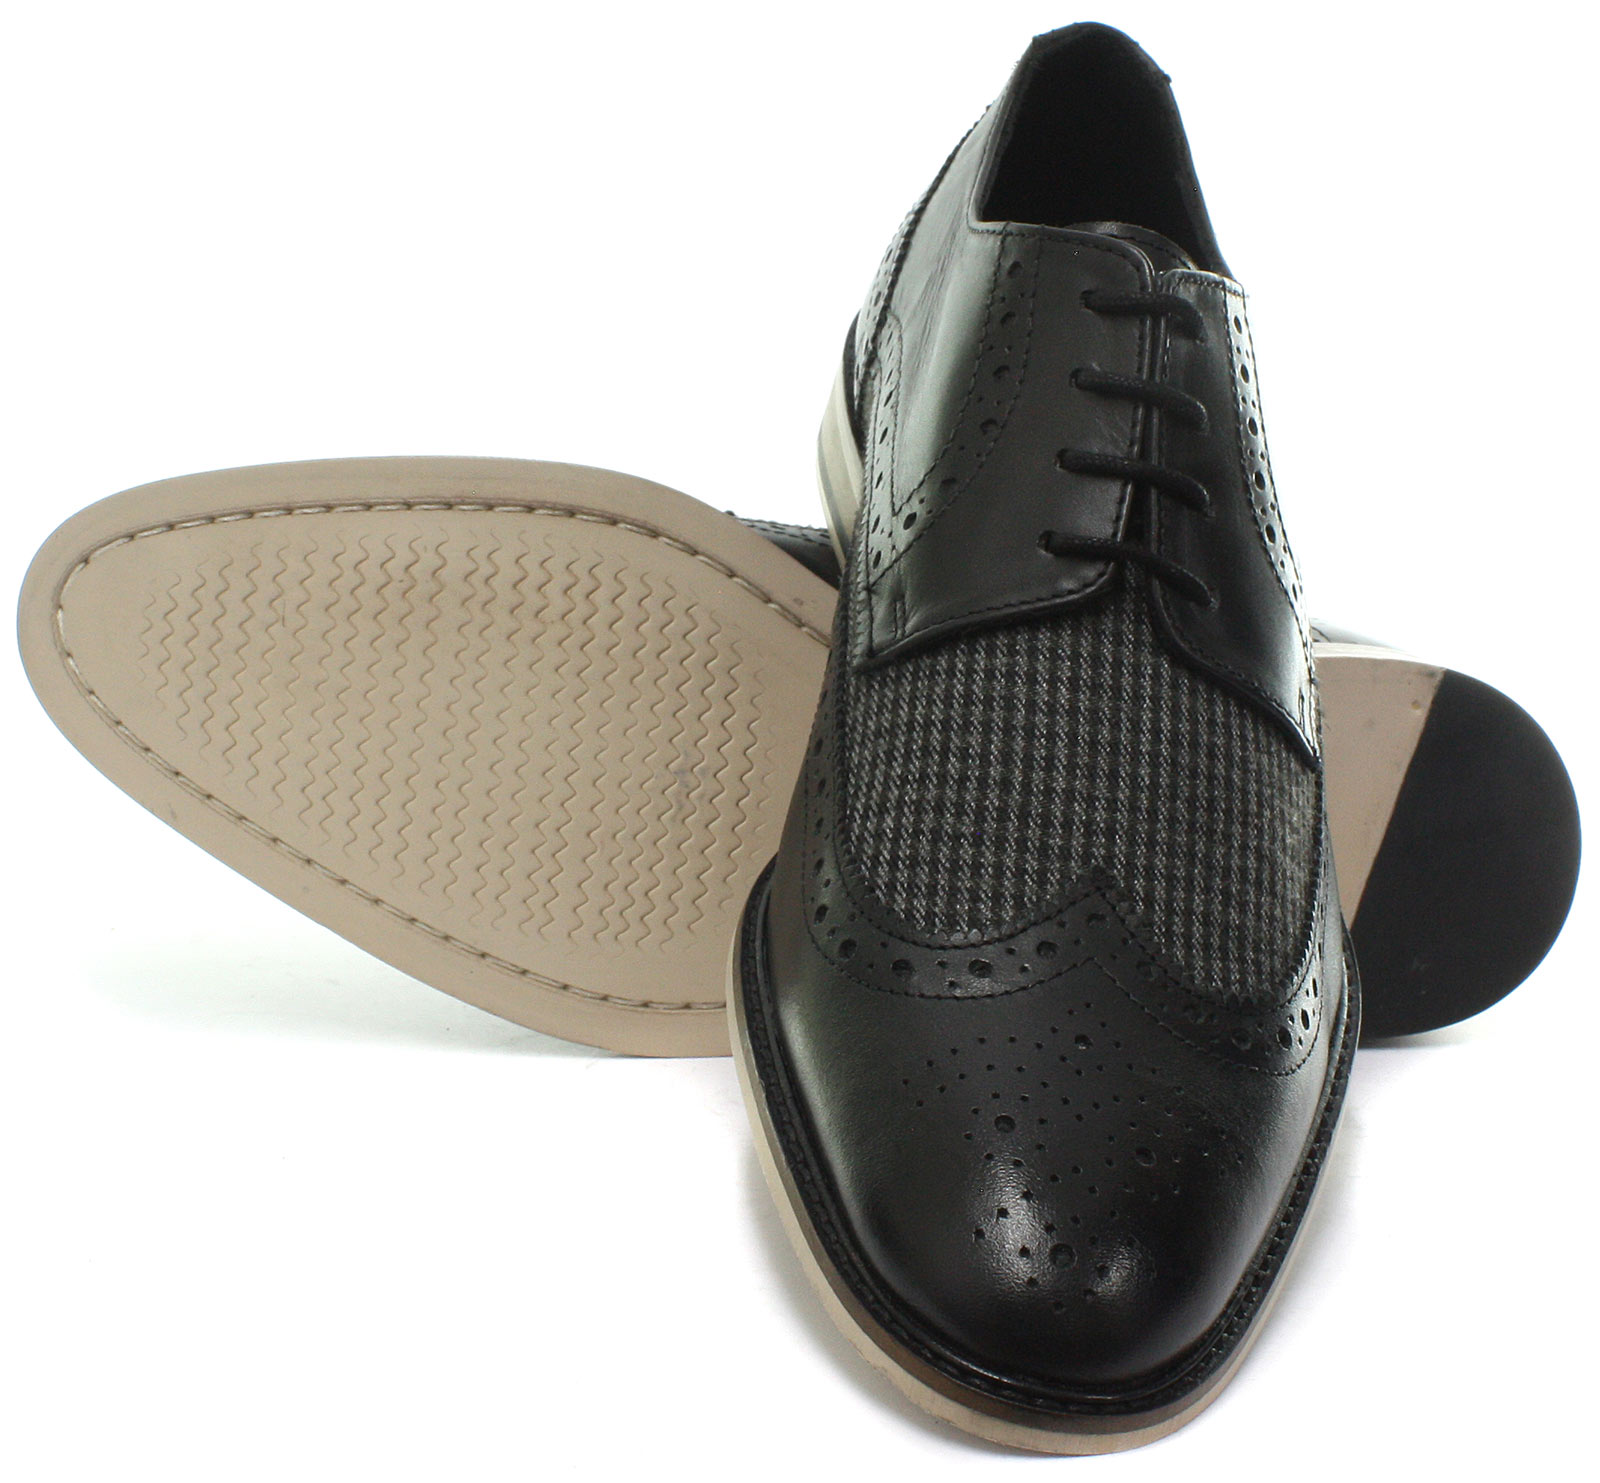 New-Roamers-4-Eye-Wing-Cap-Gibson-Black-Mens-Brogue-Shoes-ALL-SIZES miniature 3